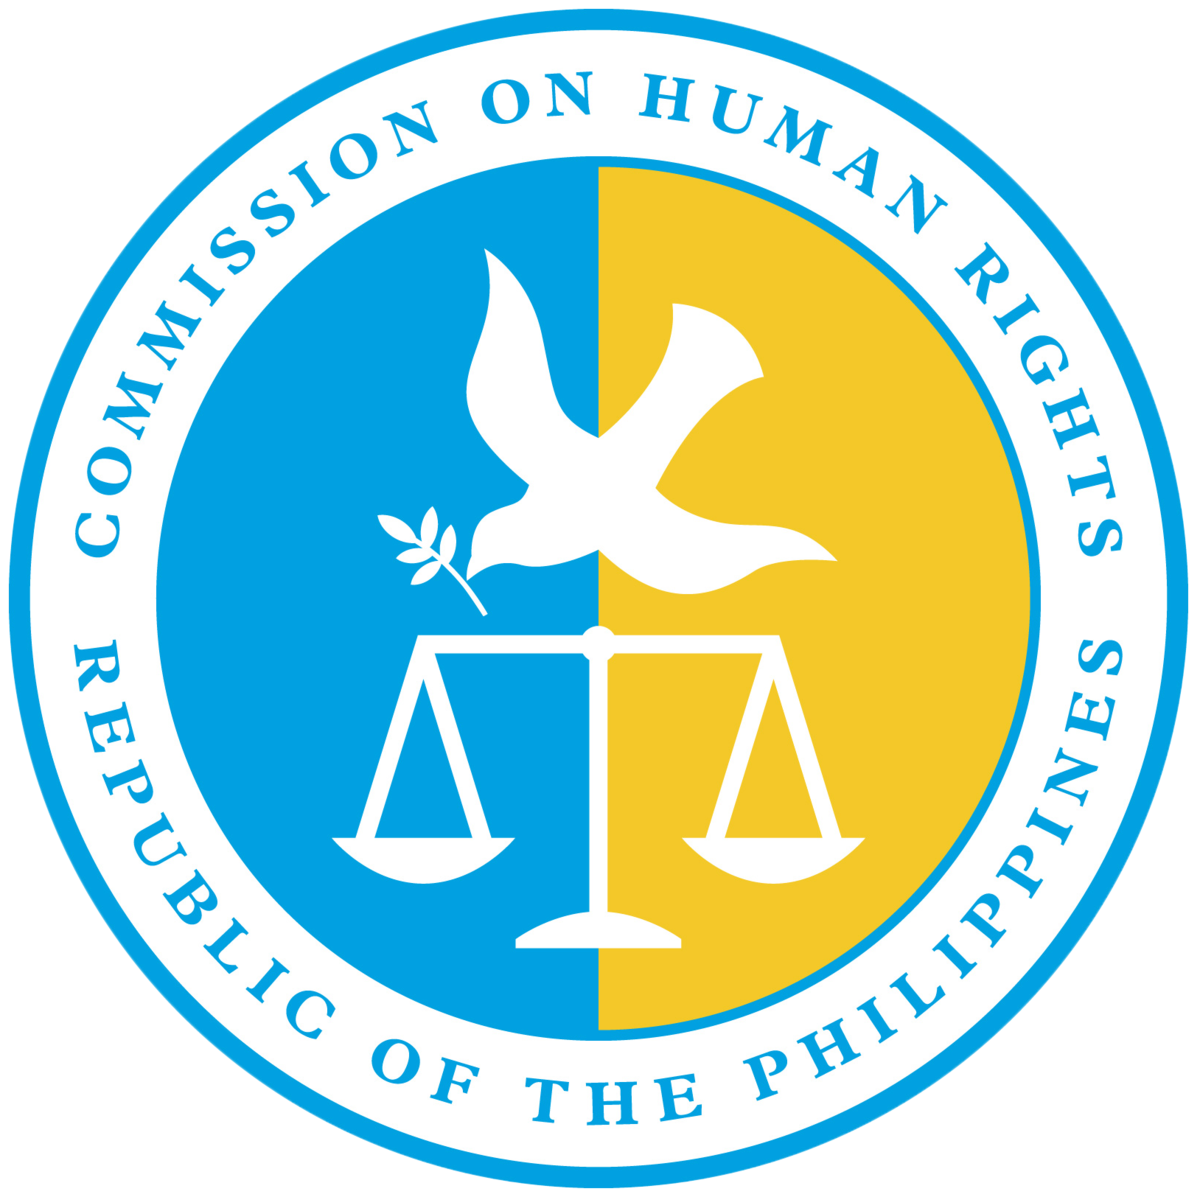 Commission on human rights philippines wikipedia - Office of the commissioner for human rights ...